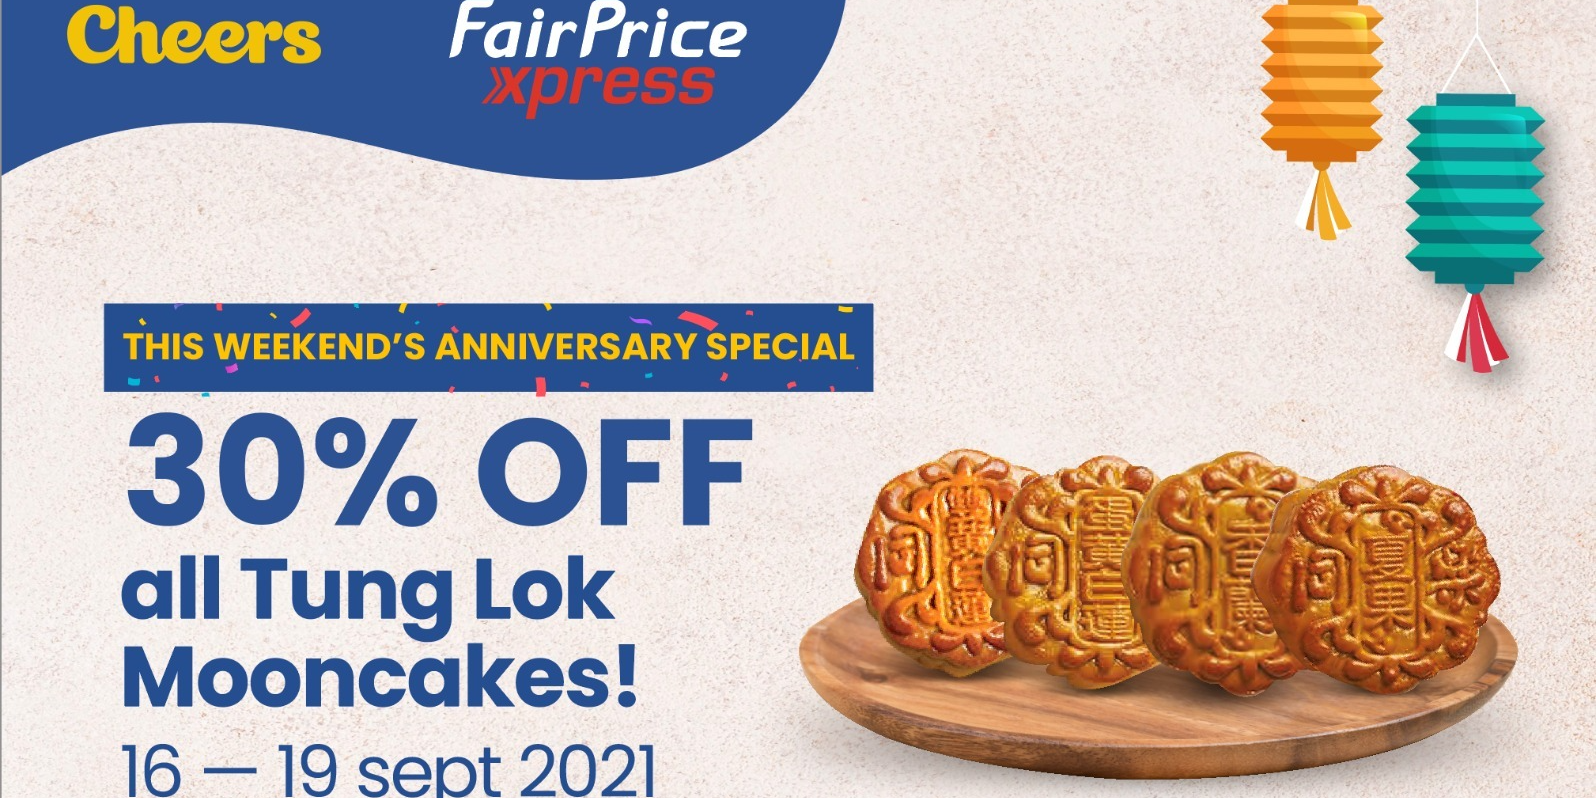 4 DAYS ONLY! Anniversary Special Mooncake Promotion at Cheers and FairPrice Xpress